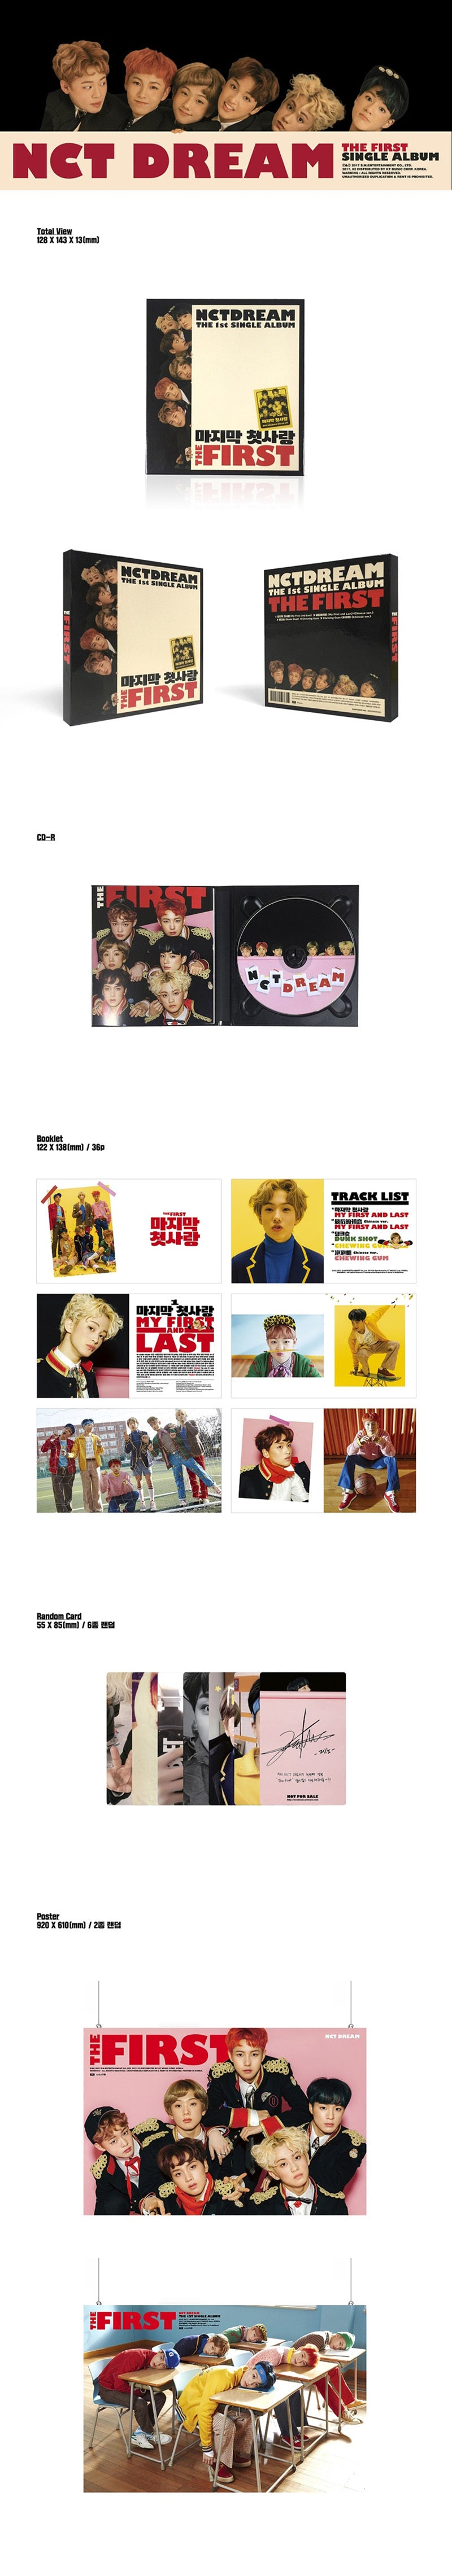 RE-RELEASE NCT DREAM SINGLE ALBUM VOL 1 [THE FIRST] SOKOLLAB UK